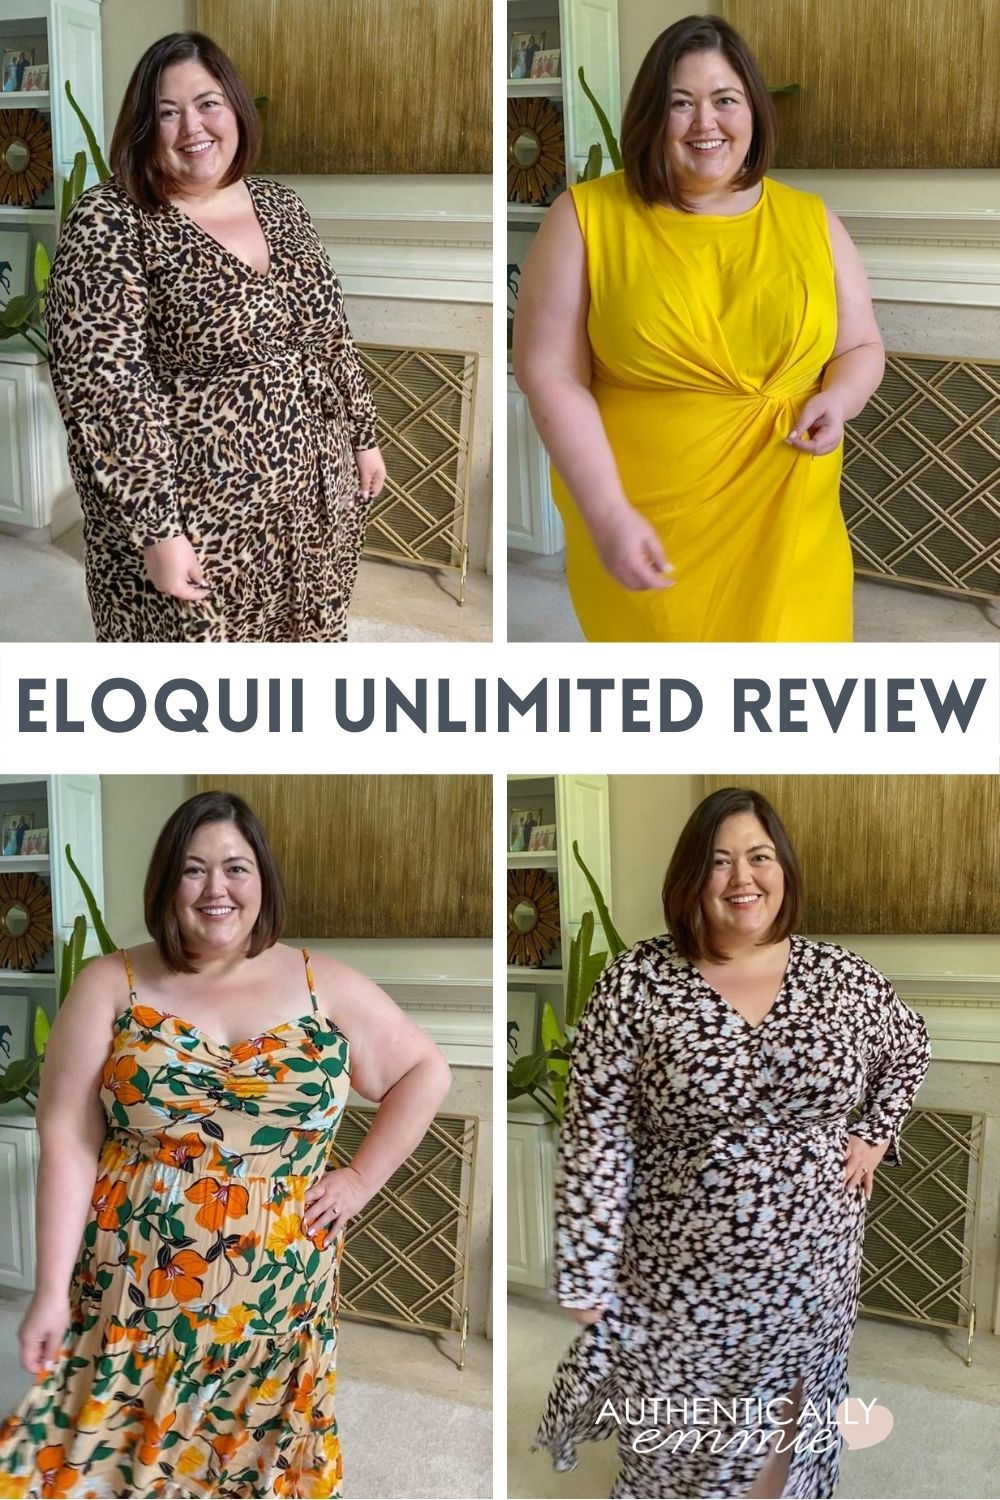 ELOQUII Unlimited Review